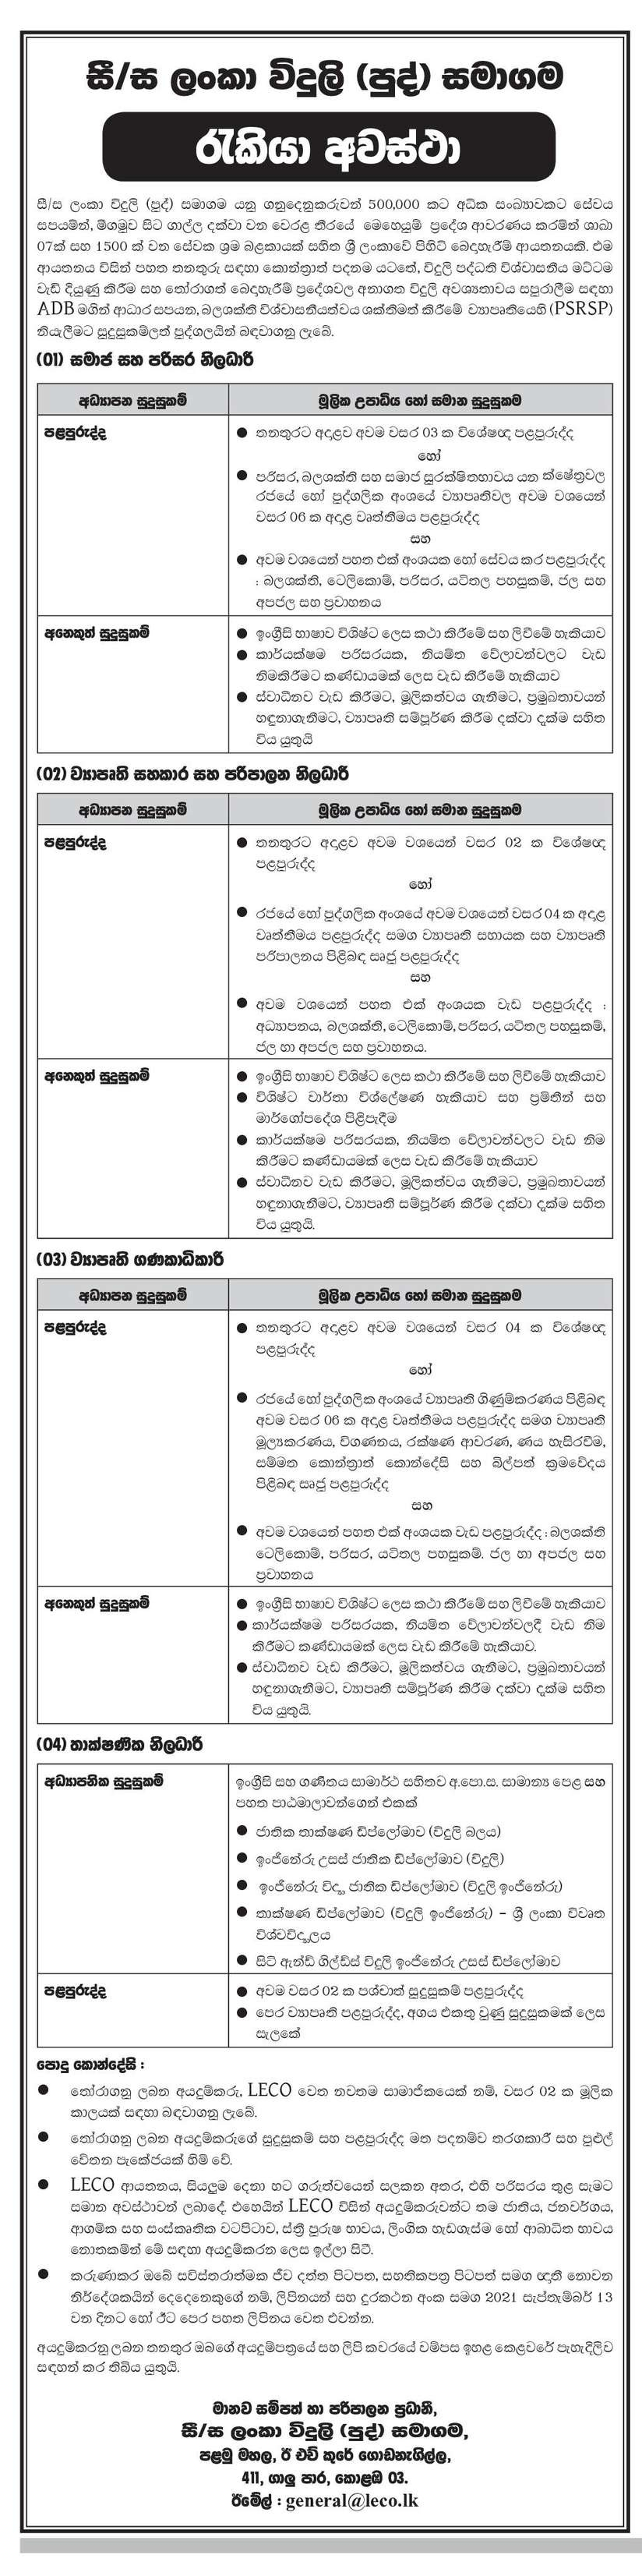 Social and Environmental Officer, Project Assistant, Administrative Officer, Project Accountant, Technical Officer